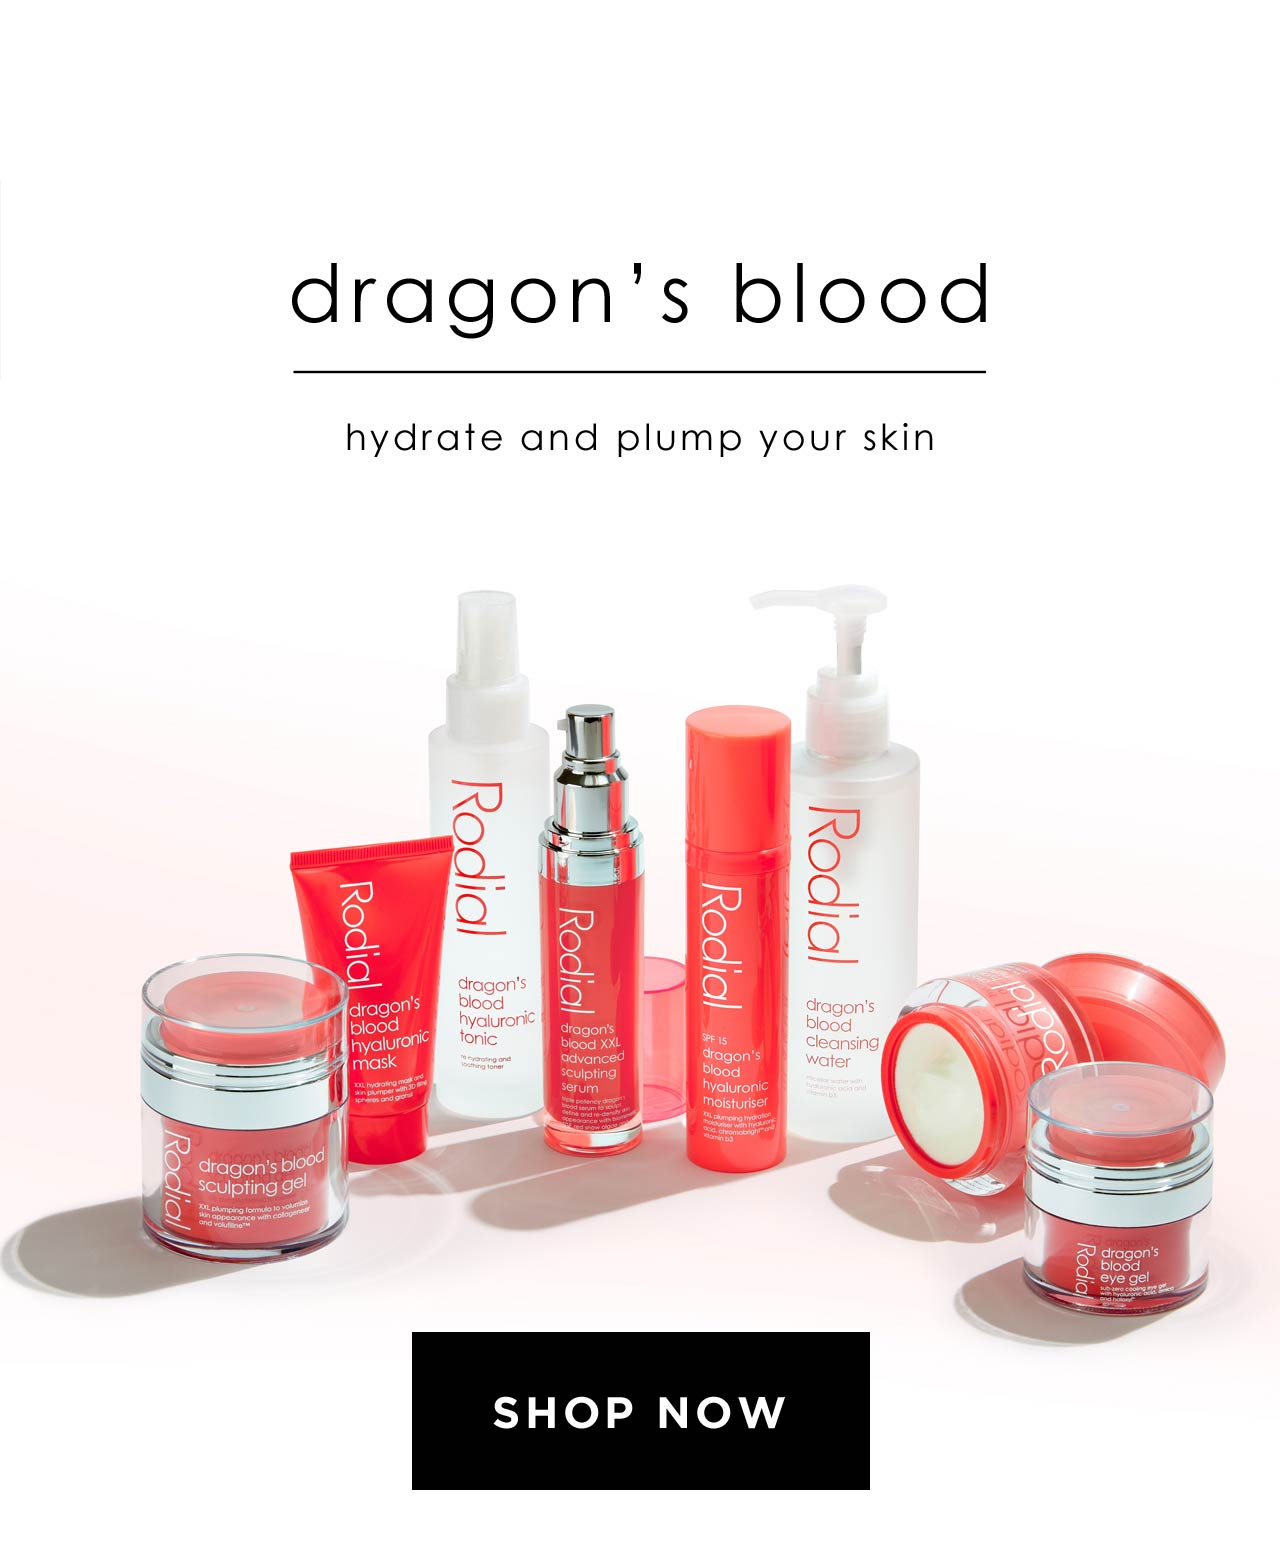 Dragon's Blood hydrate and plump your skin